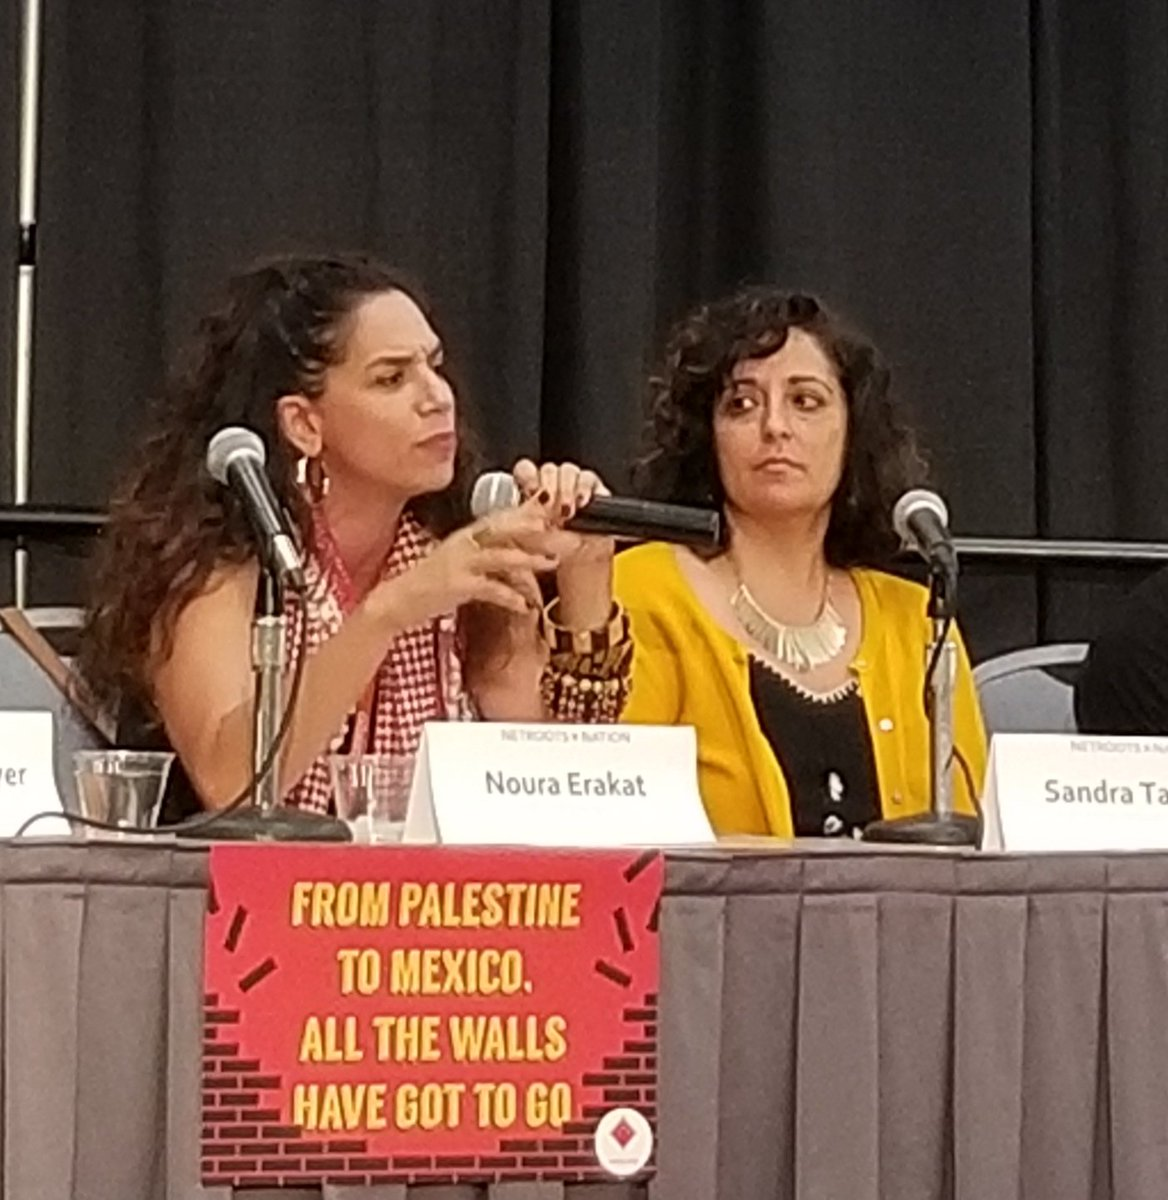 Palestine is central to US imperialism- @4noura #NN19